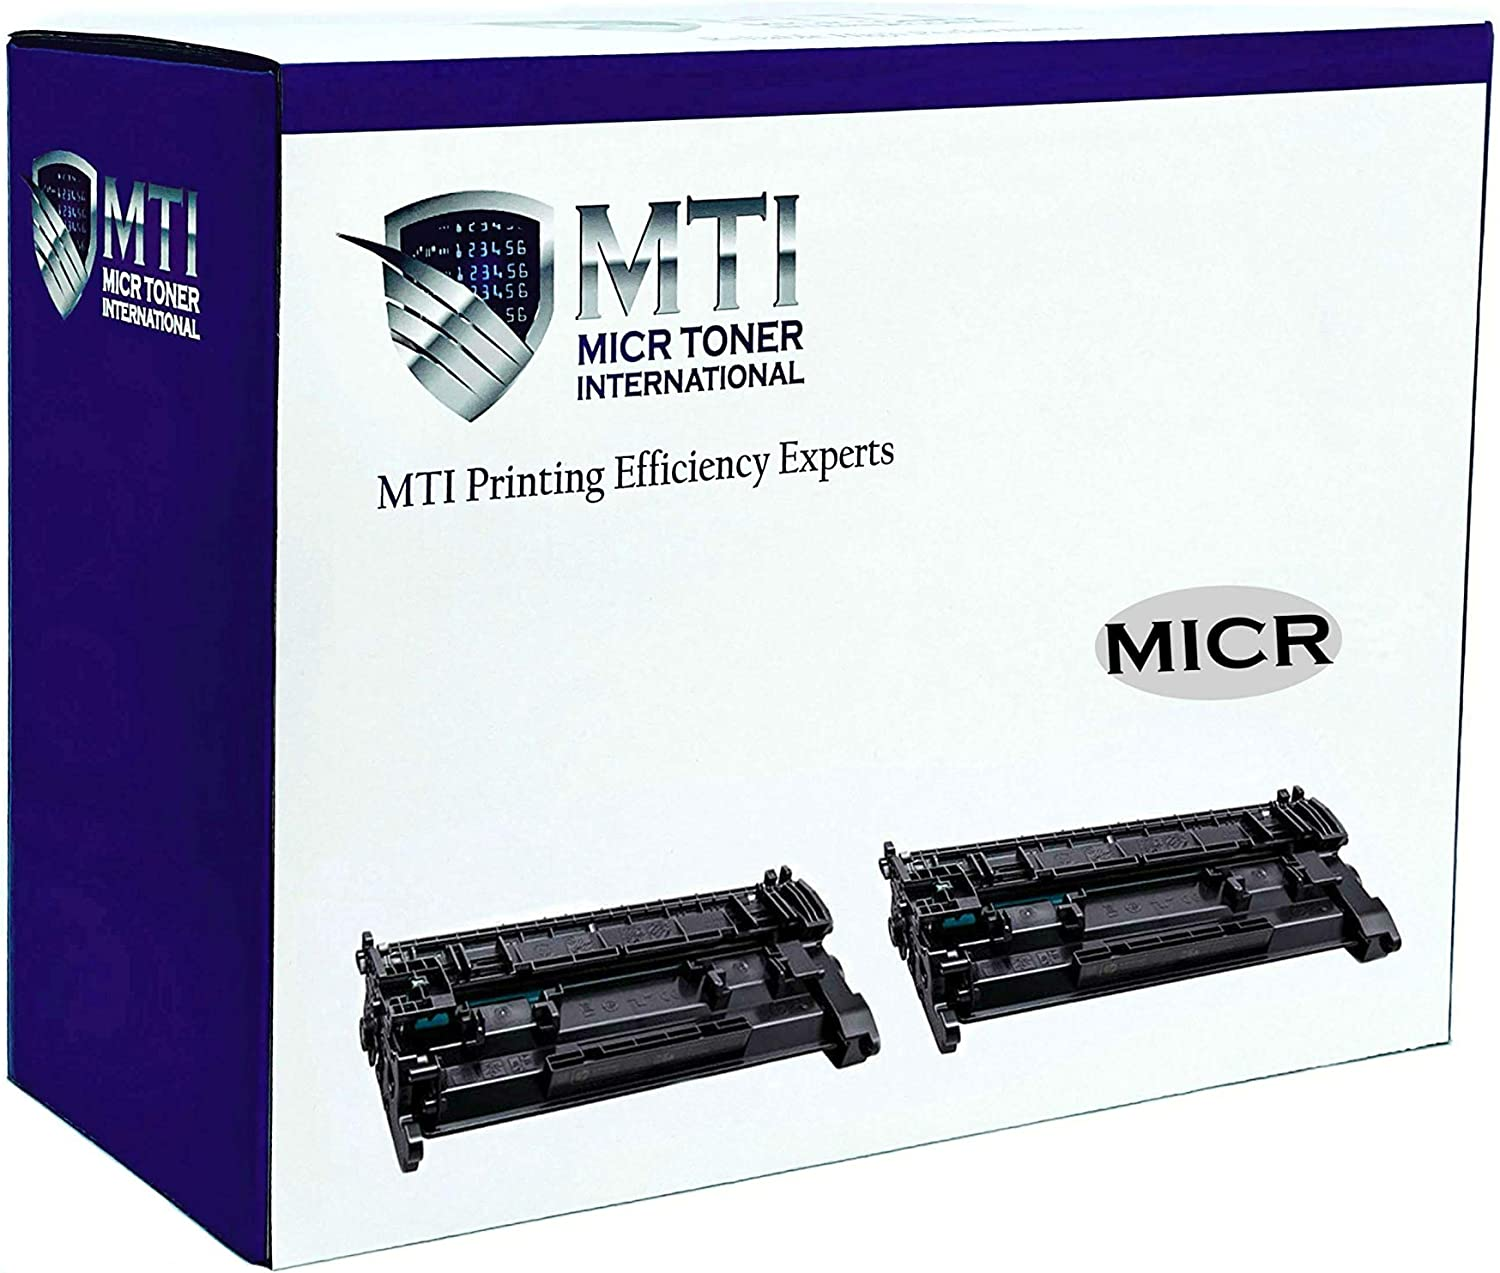 2-Pack MICR Toner International Compatible Magnetic Ink Cartridge Replacement for HP CF226A 26A Laserjet Pro M402dn M402n M402dw M426fdn M426fdw